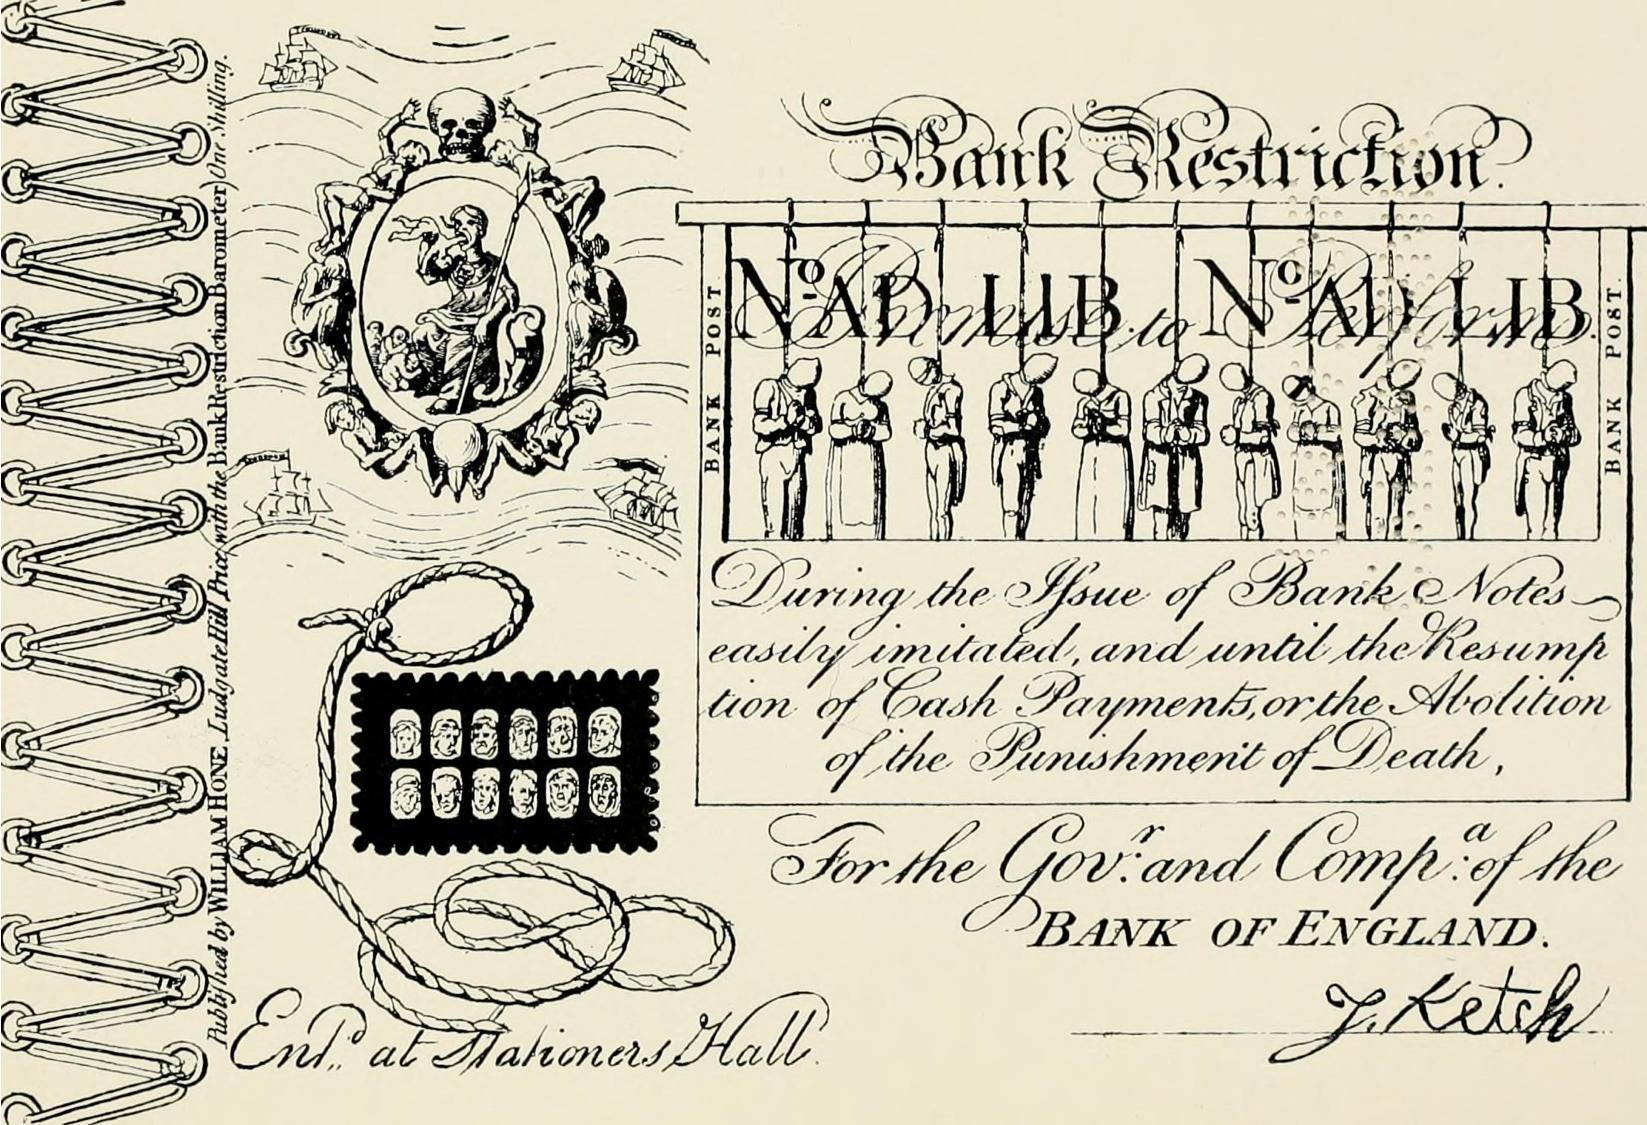 George Cruikshank, Bank Restriction Note, Satire, Protest, Uttering, Forgery, Bank Notes, Currency, St. John's Cemetery Project, Old Parramattans, Convicts, Transportation, Sarah Moses, Tell the World I Died for Love, Died of Broken Heart, Bank of England